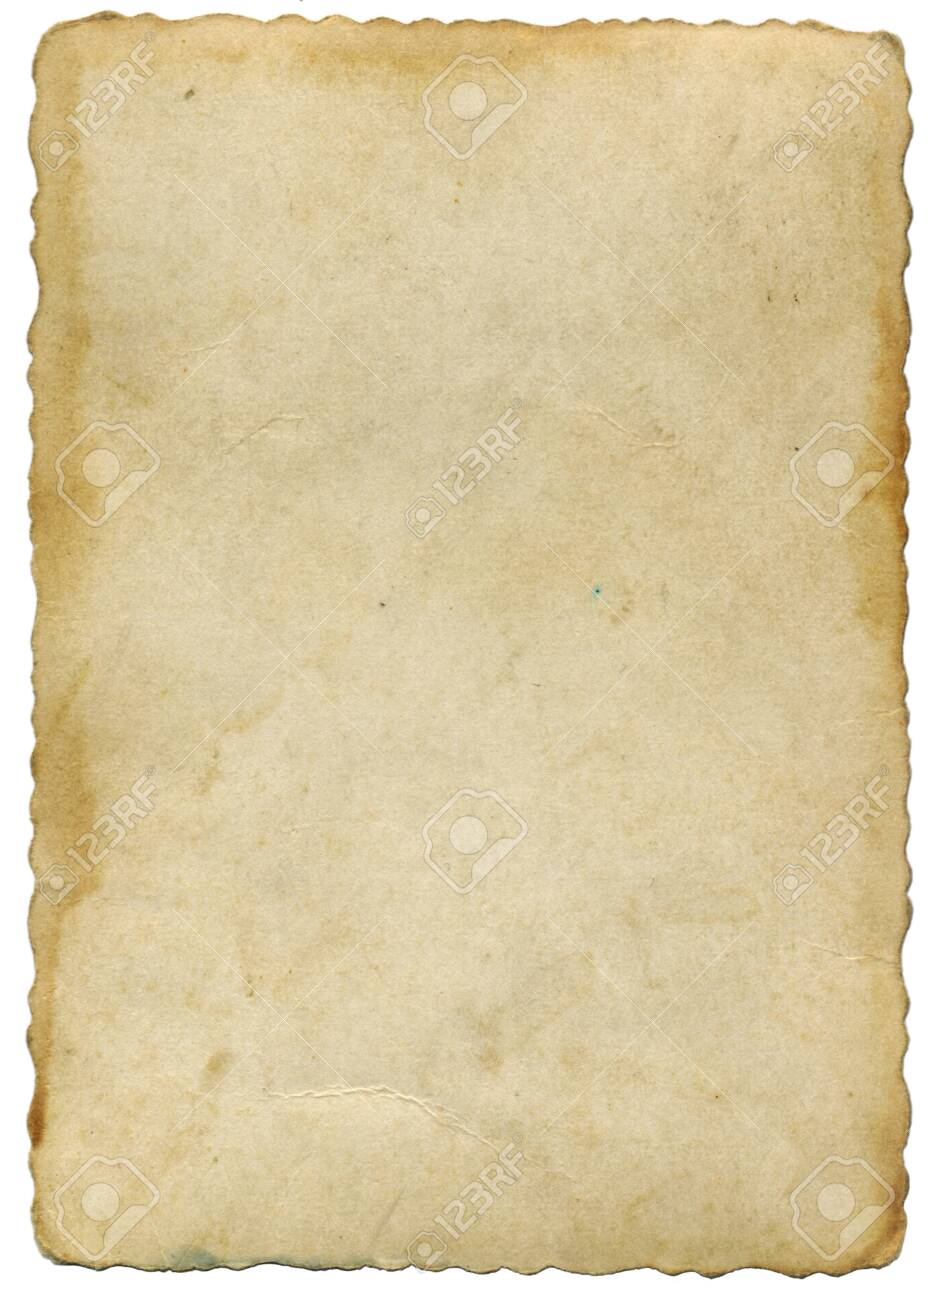 Old yellowed parchment - 124313879